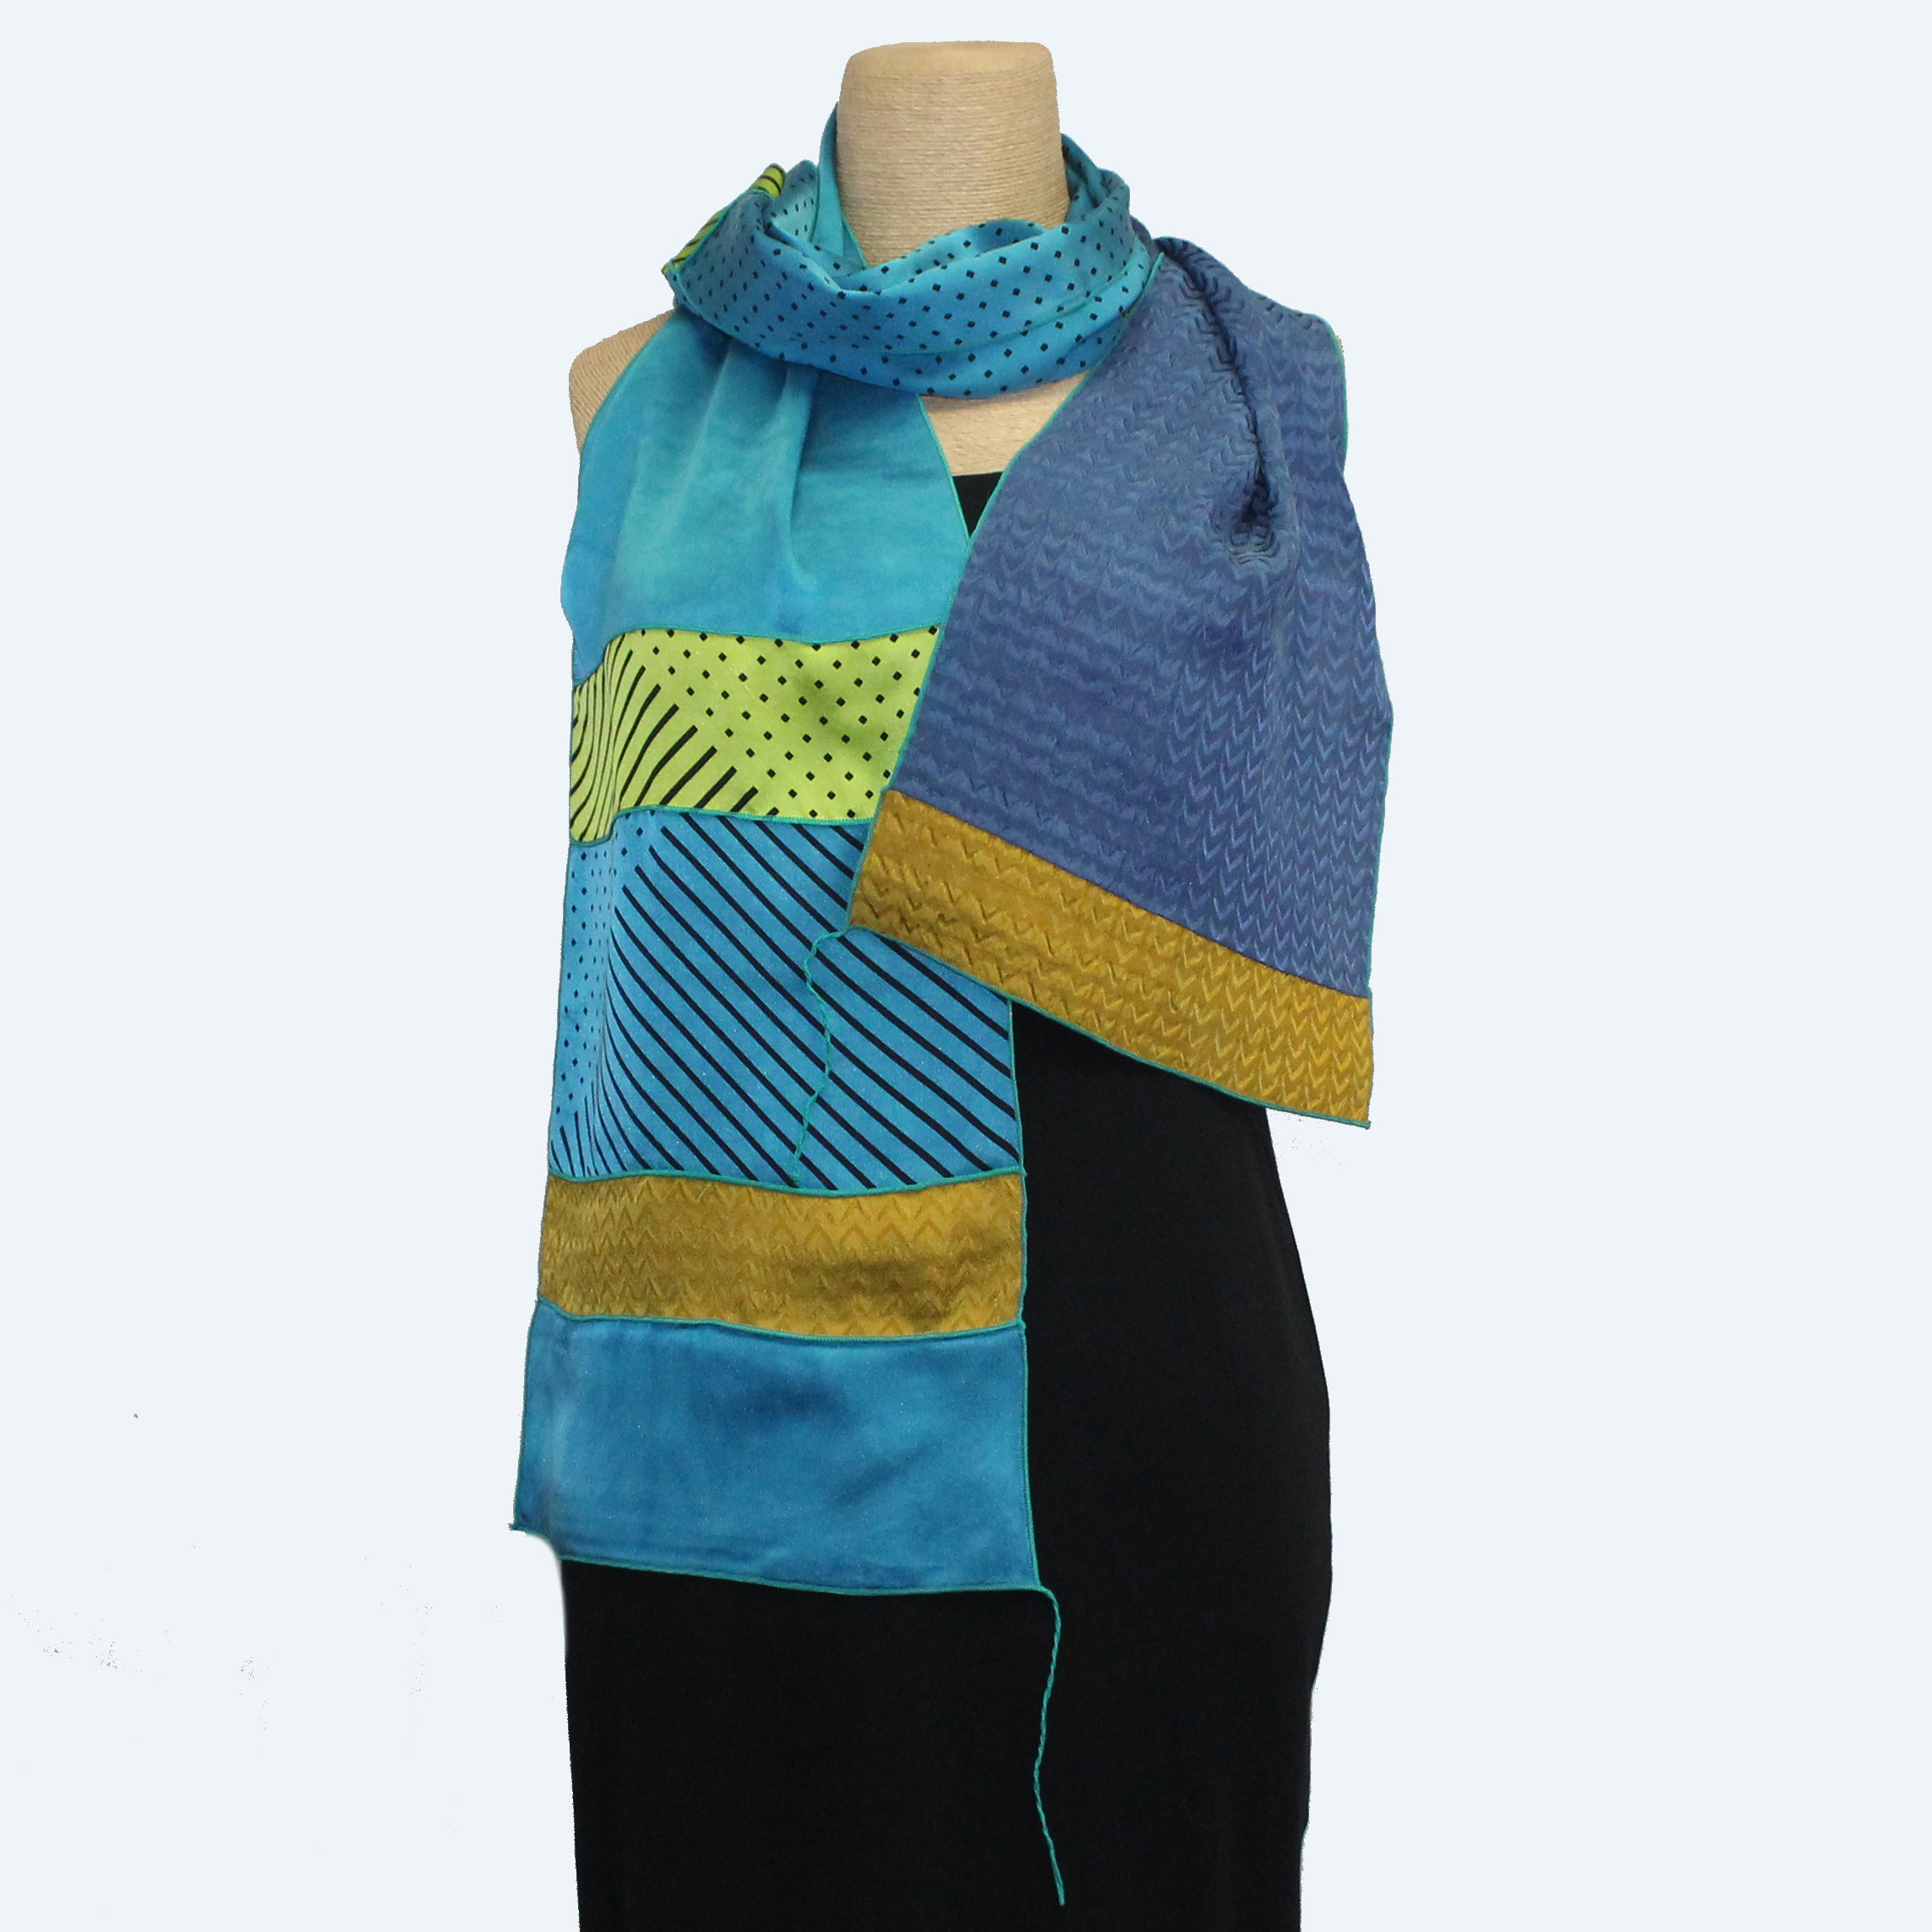 Judith Bird Scarf, Silk Singles, Northern Lights